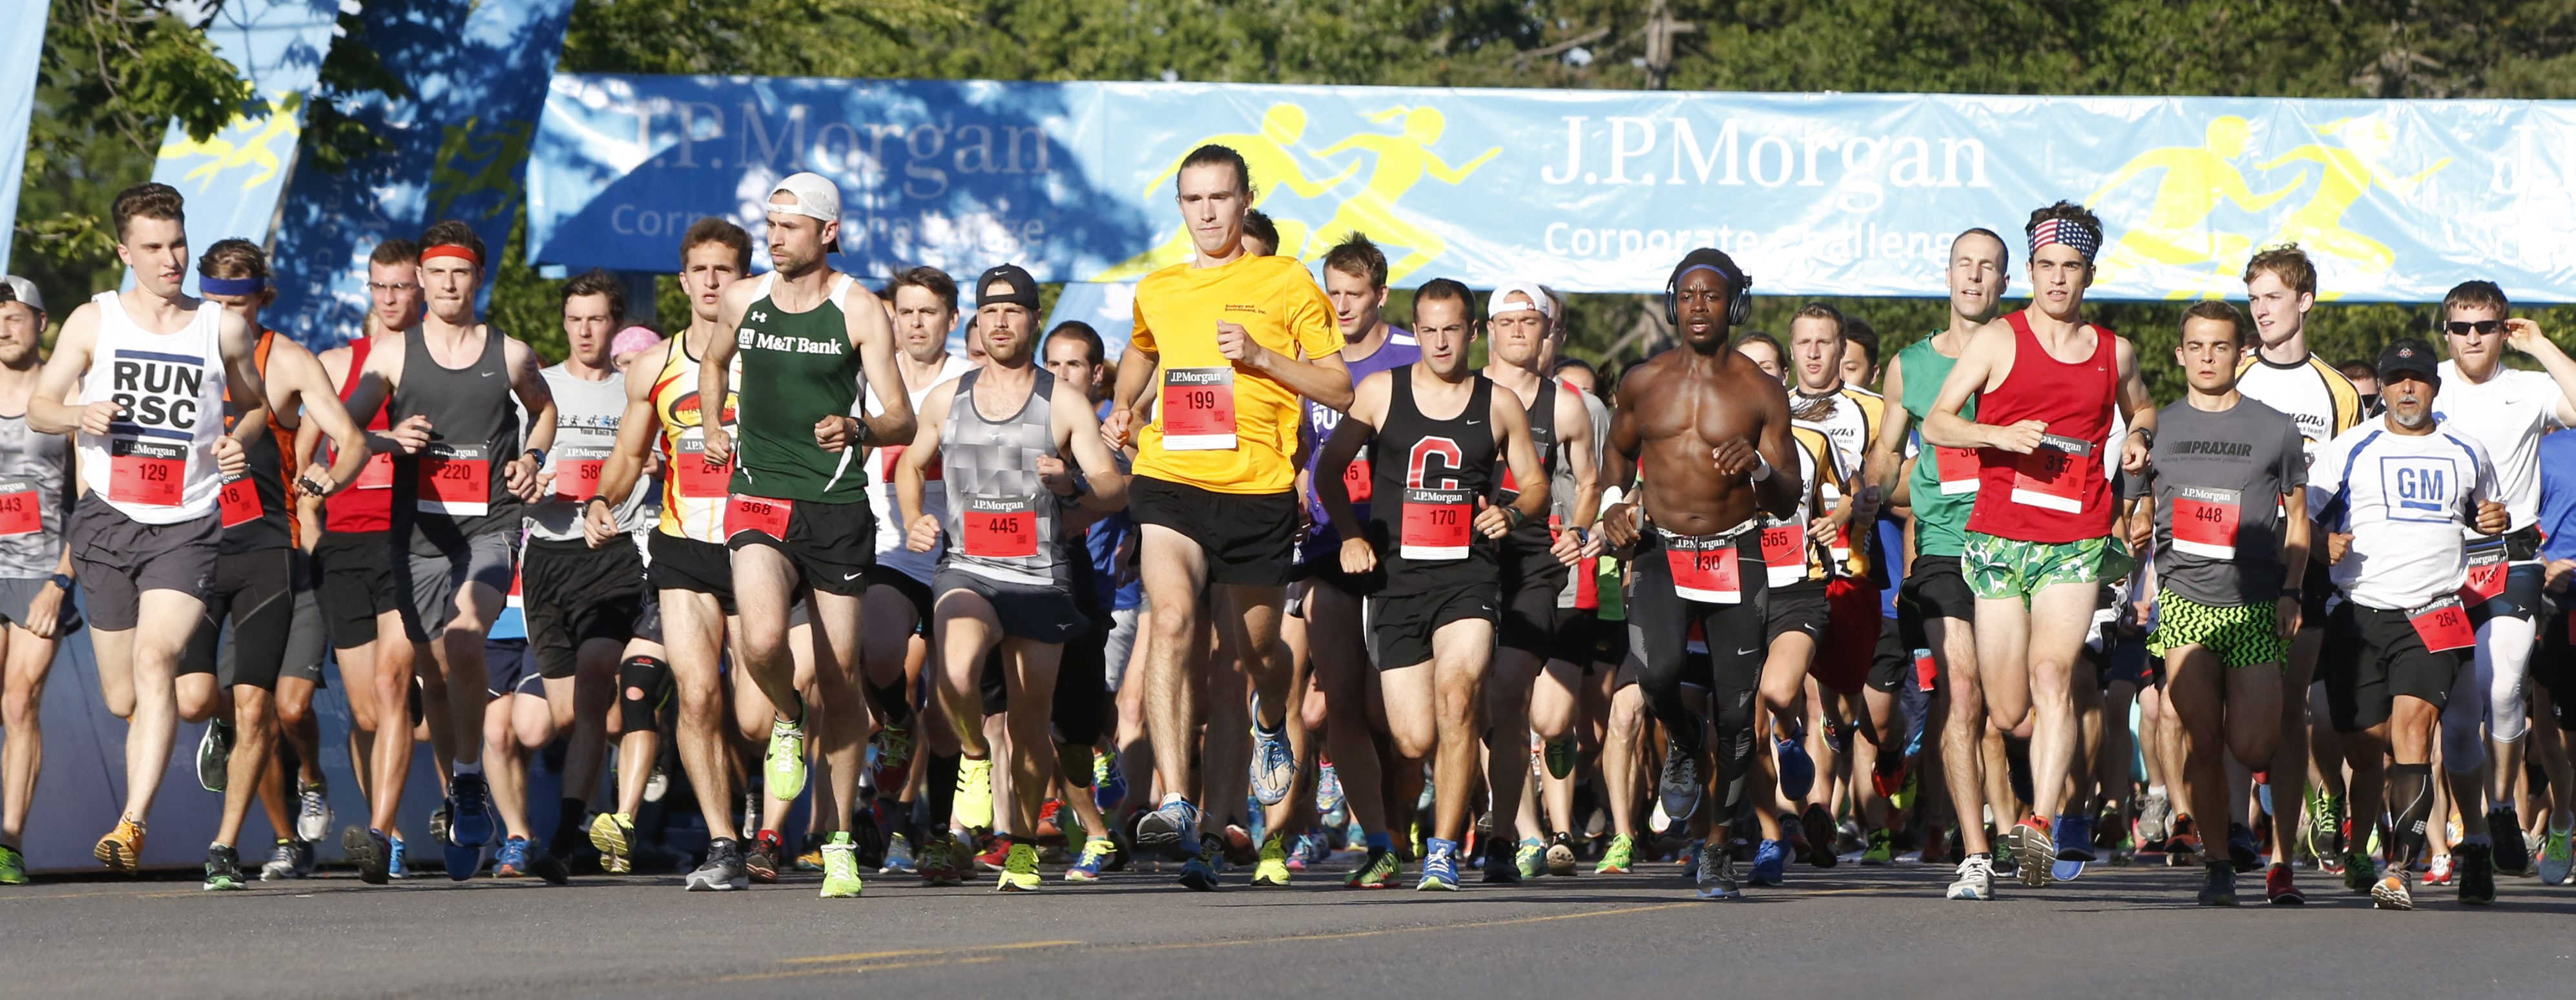 Buffalo is the second-oldest race in the J.P. Morgan Corporate Challenge Series. (Harry Scull Jr./Buffalo News)